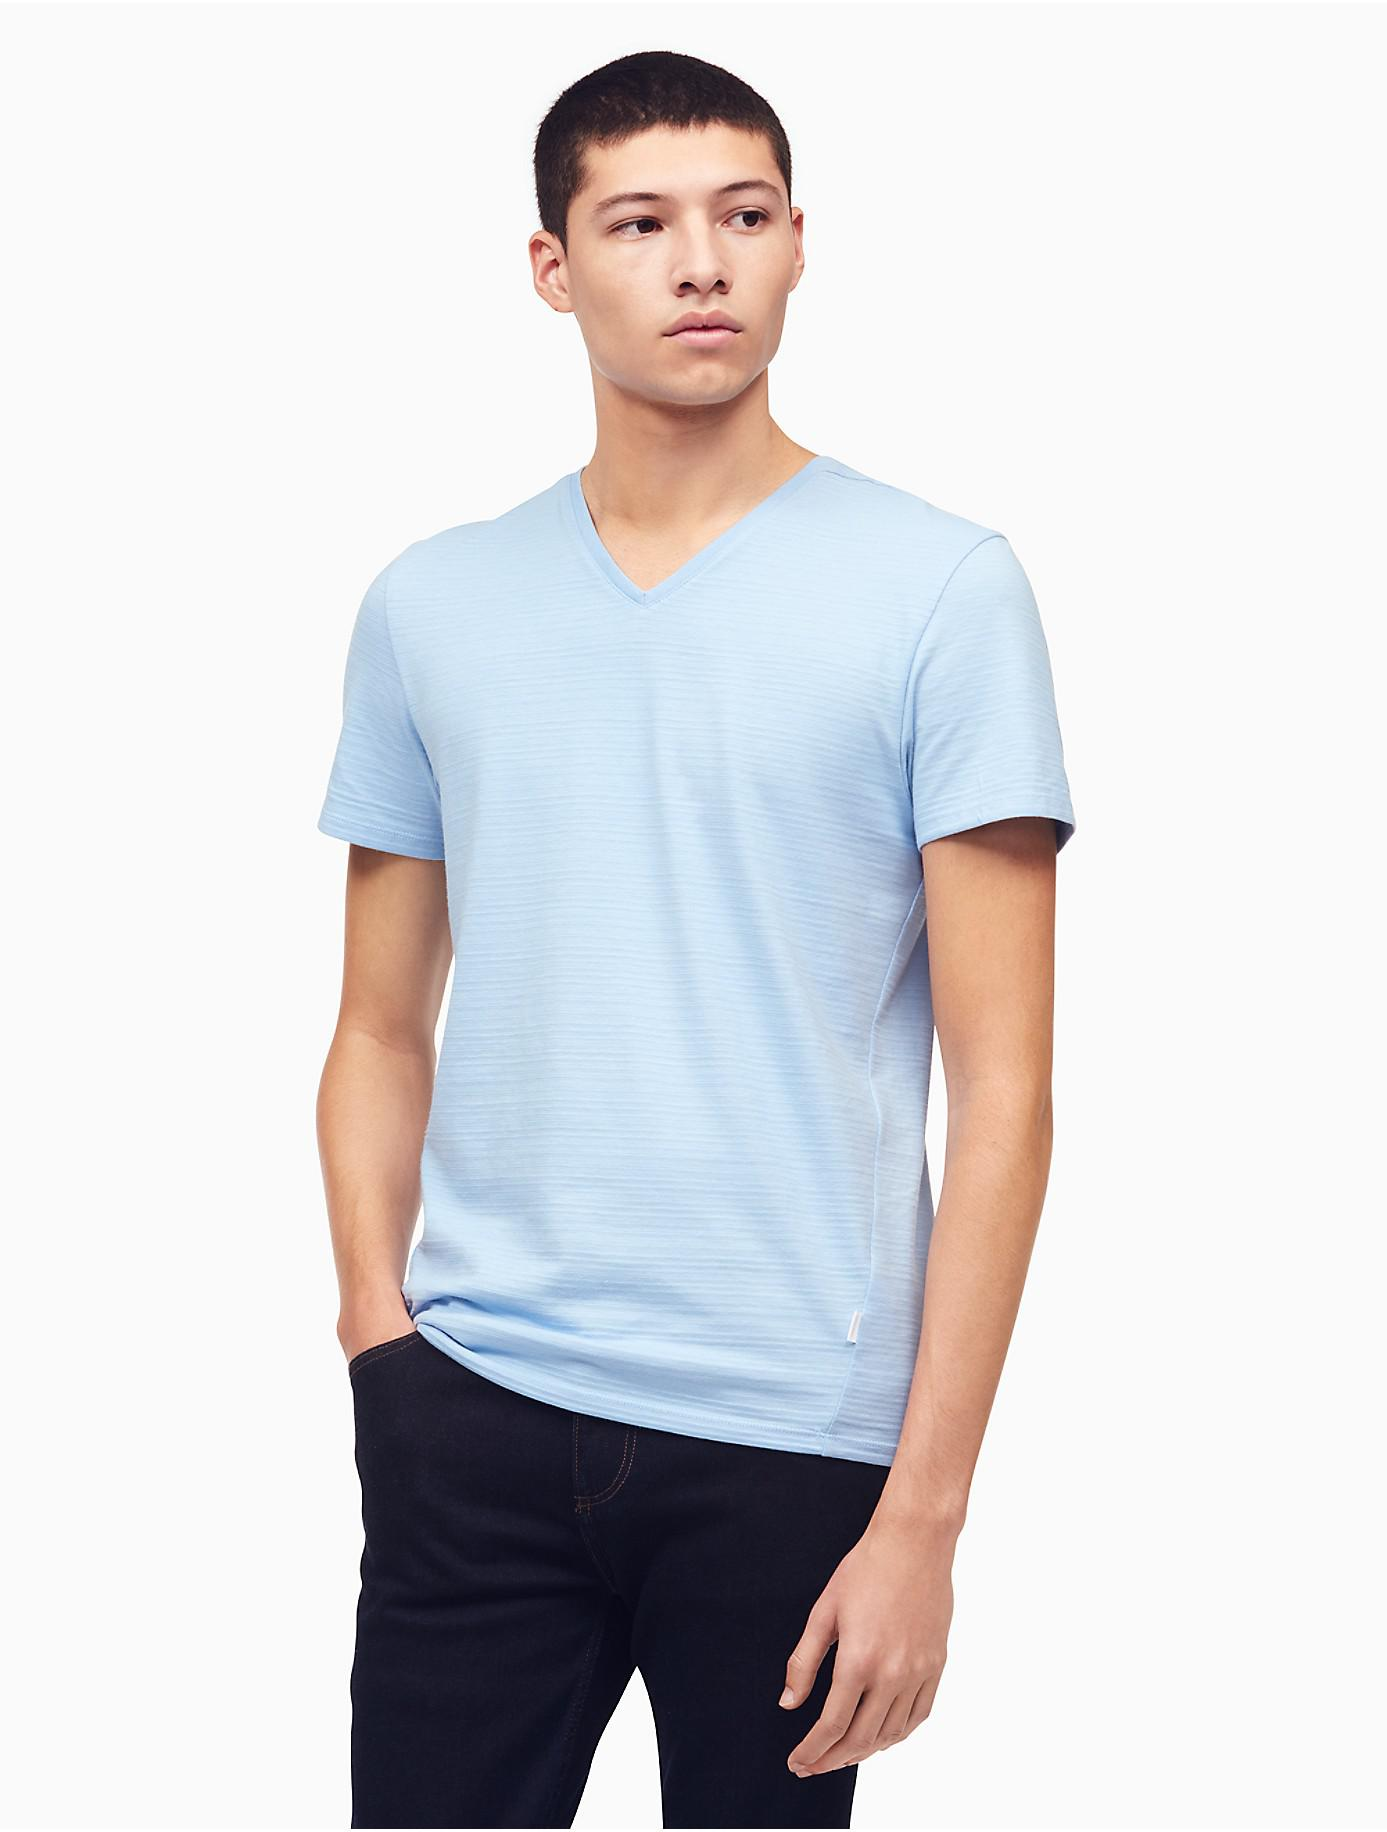 95fa8ac79c99 Lyst - Calvin Klein 205W39Nyc Slim Fit V-neck T-shirt in Blue for ...